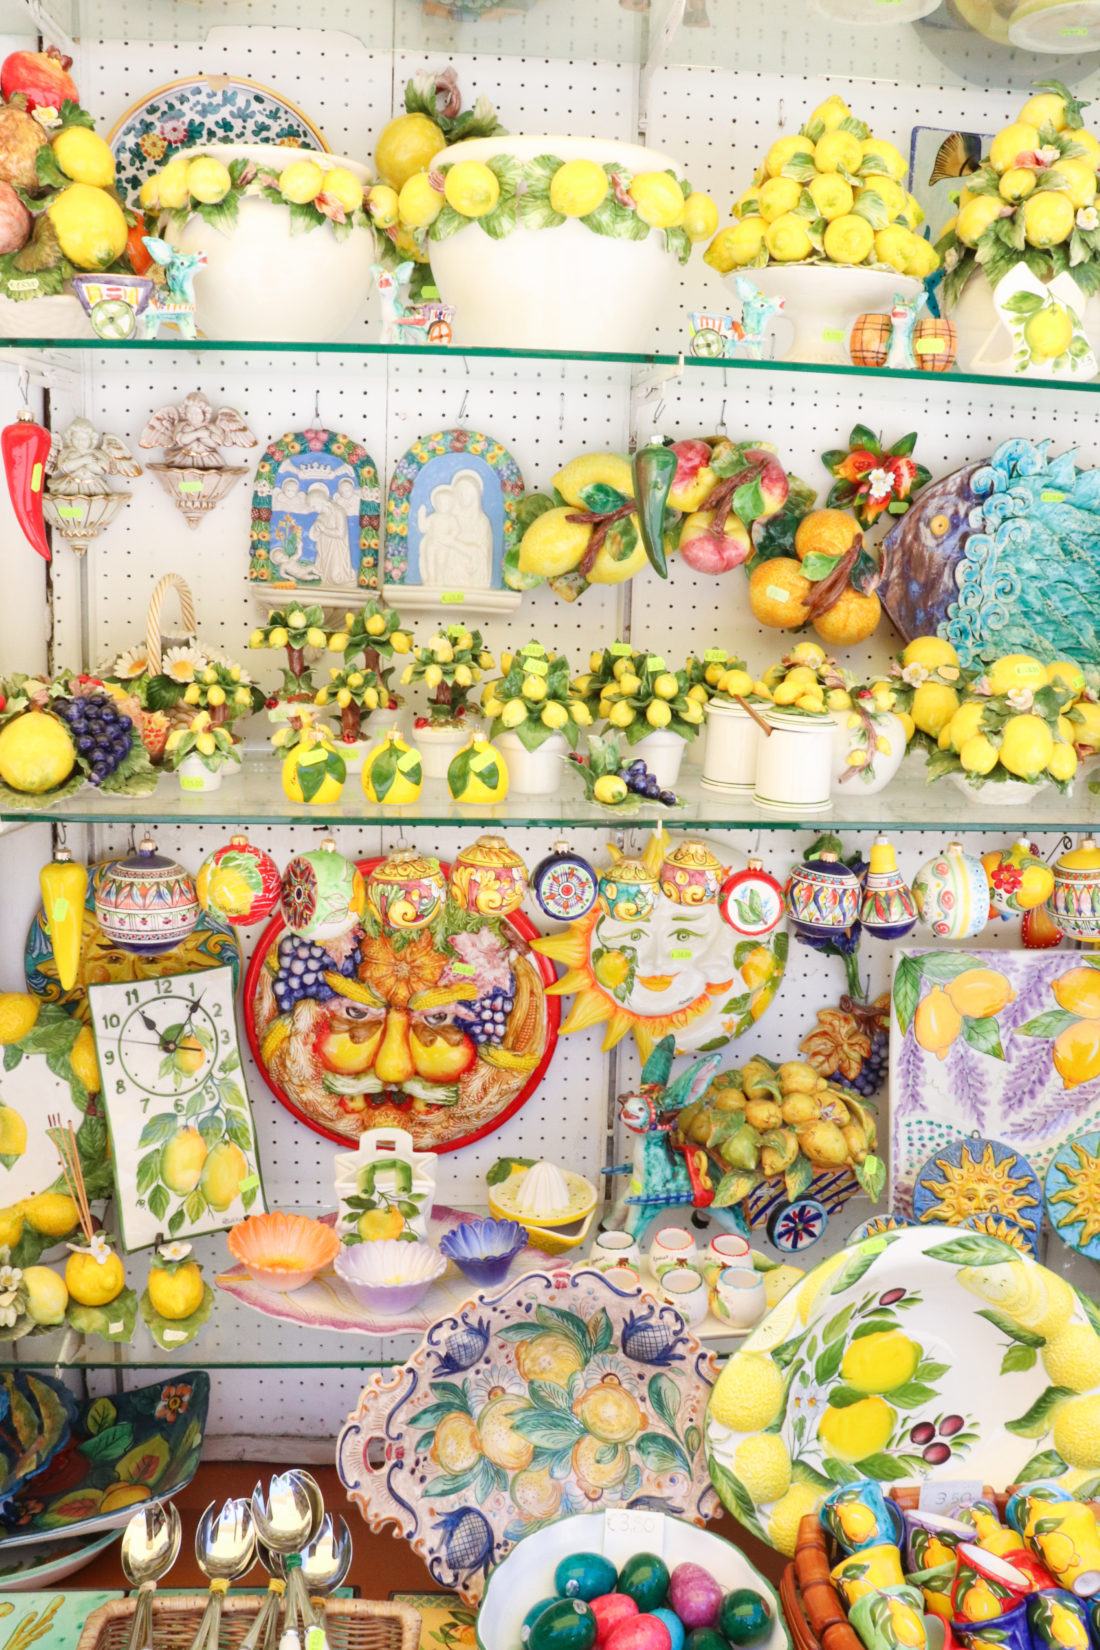 Lemon knicknacks in Amalfi